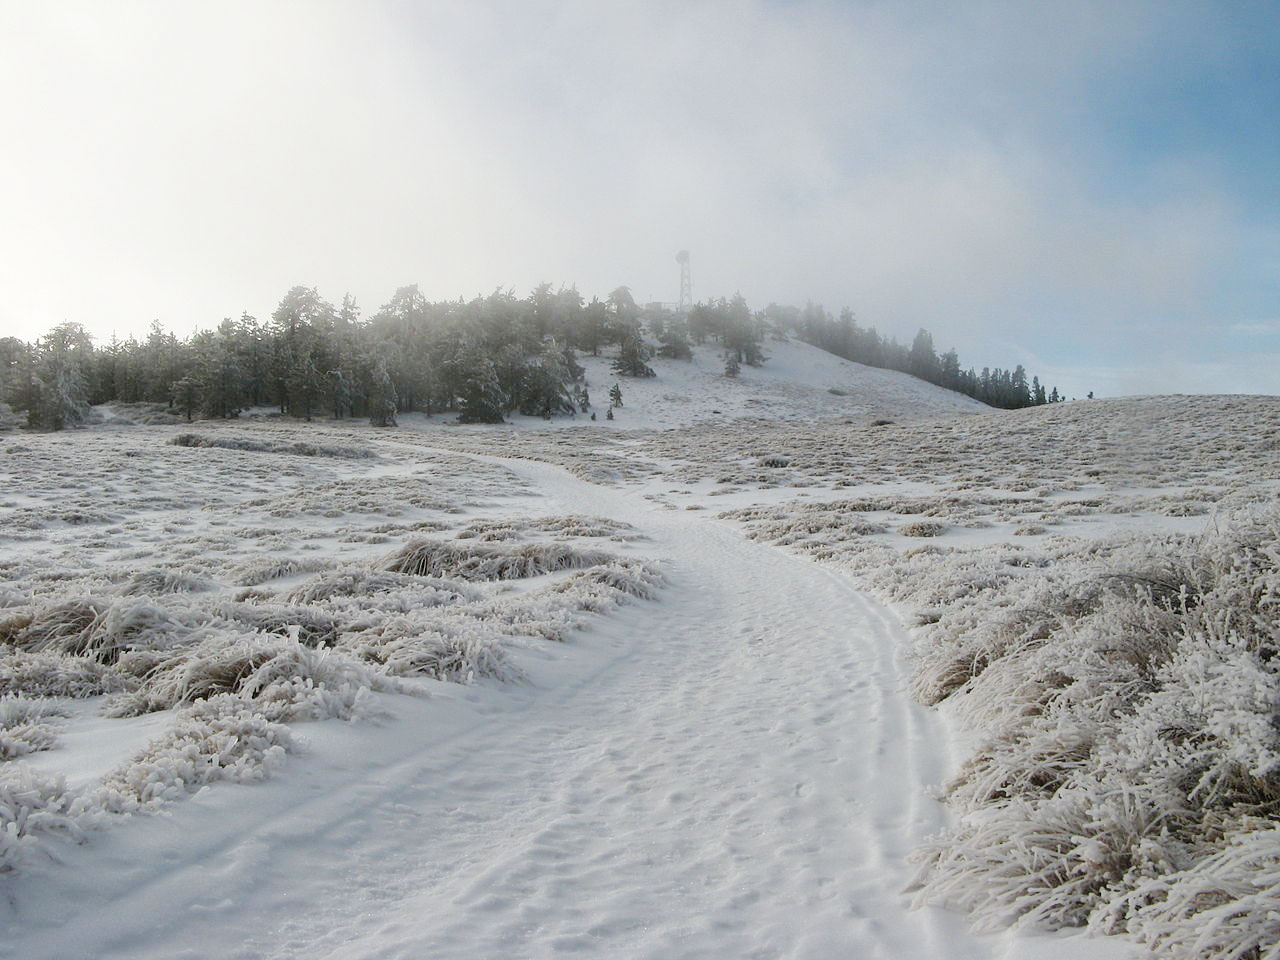 Mt. Pinos - Top-Rated Winter Destination in Los Angeles